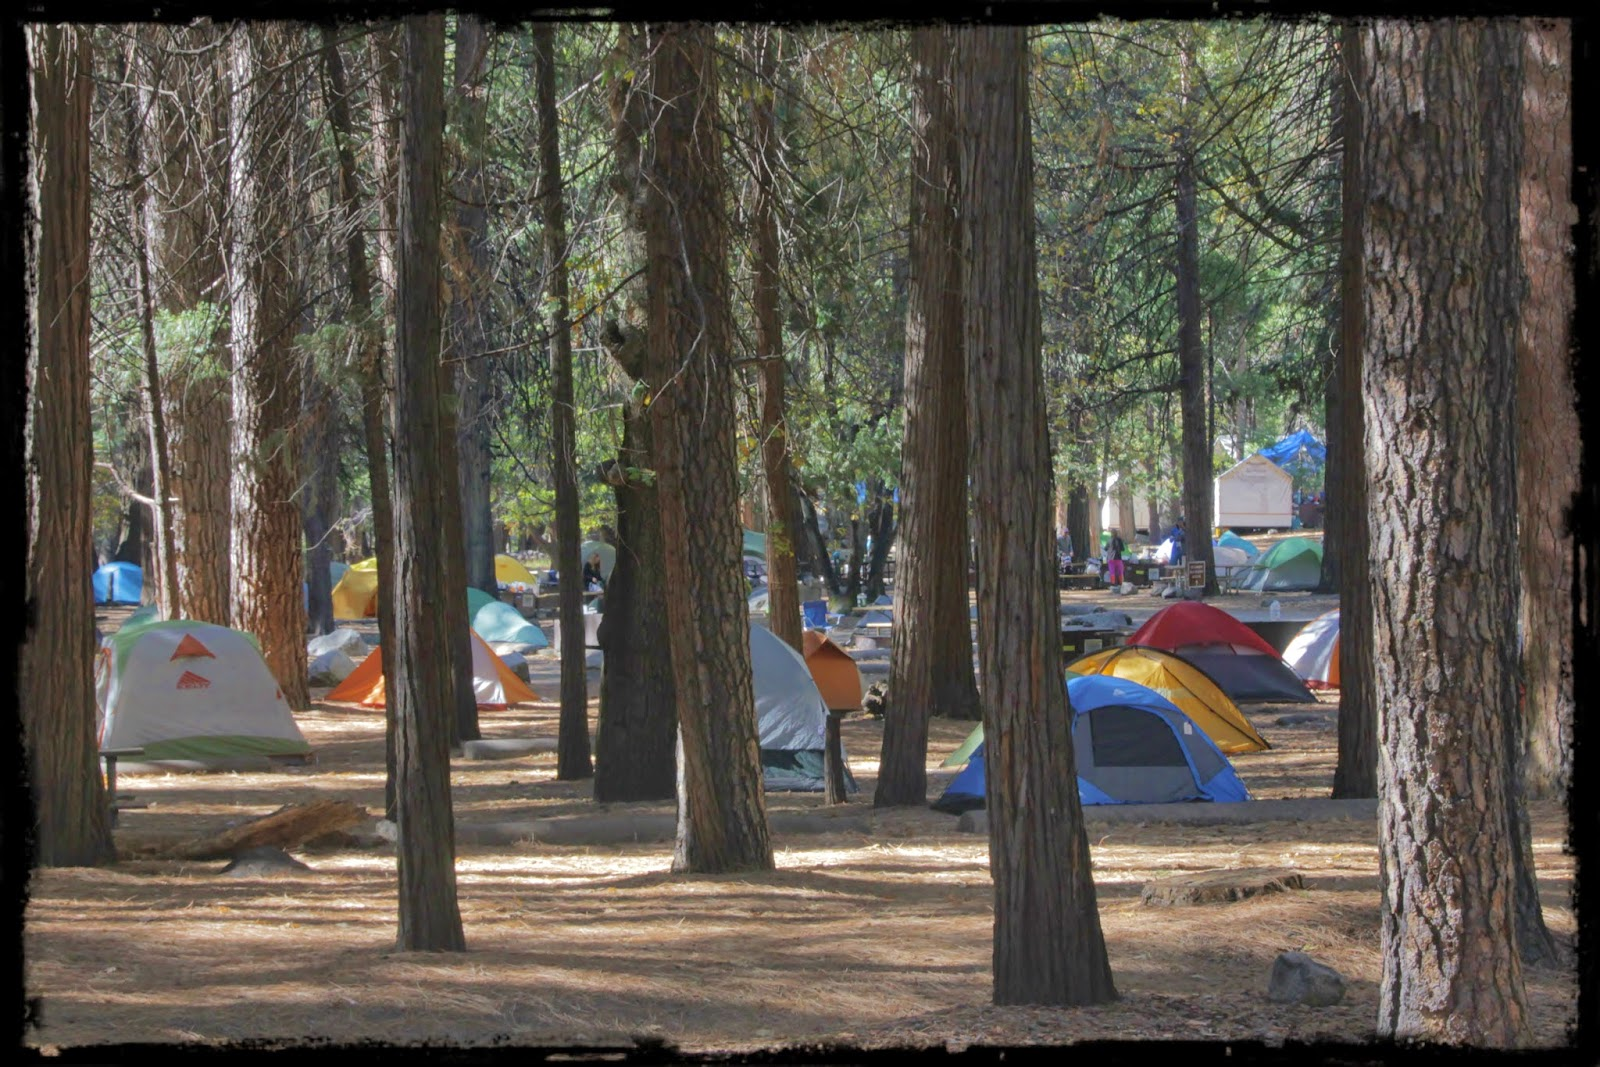 Camp 4, Yosemite National Park, California